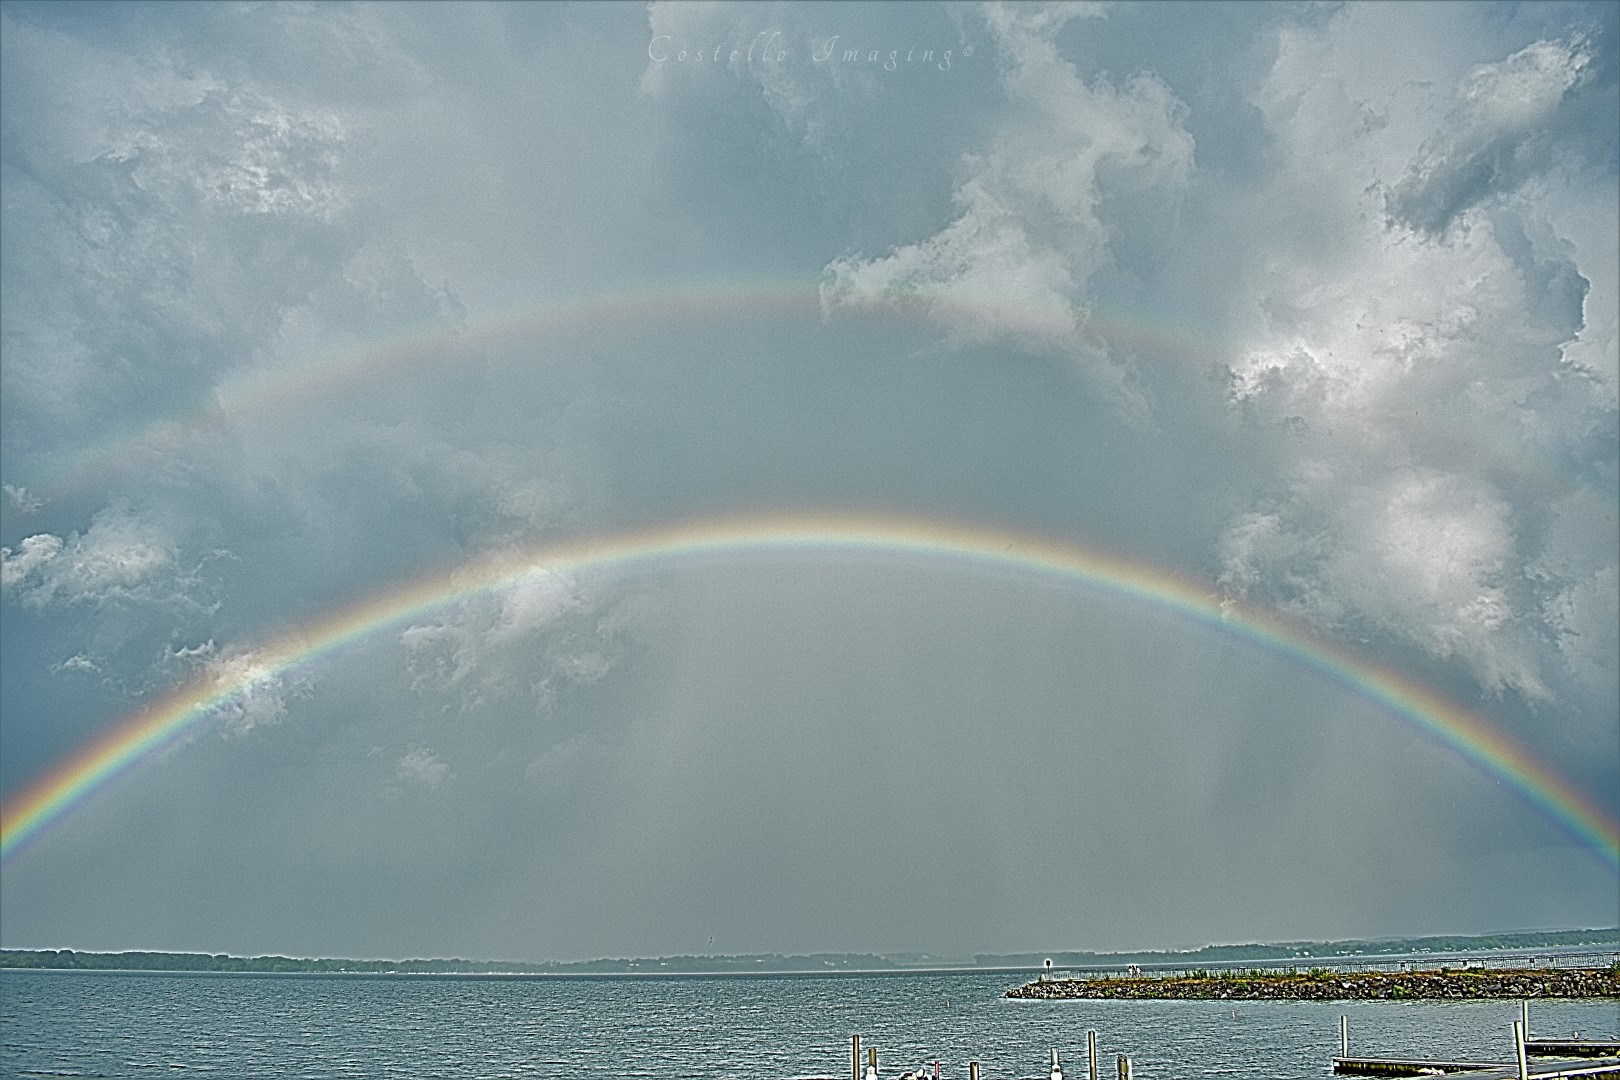 Rainbow show at Seneca Lake (photo)